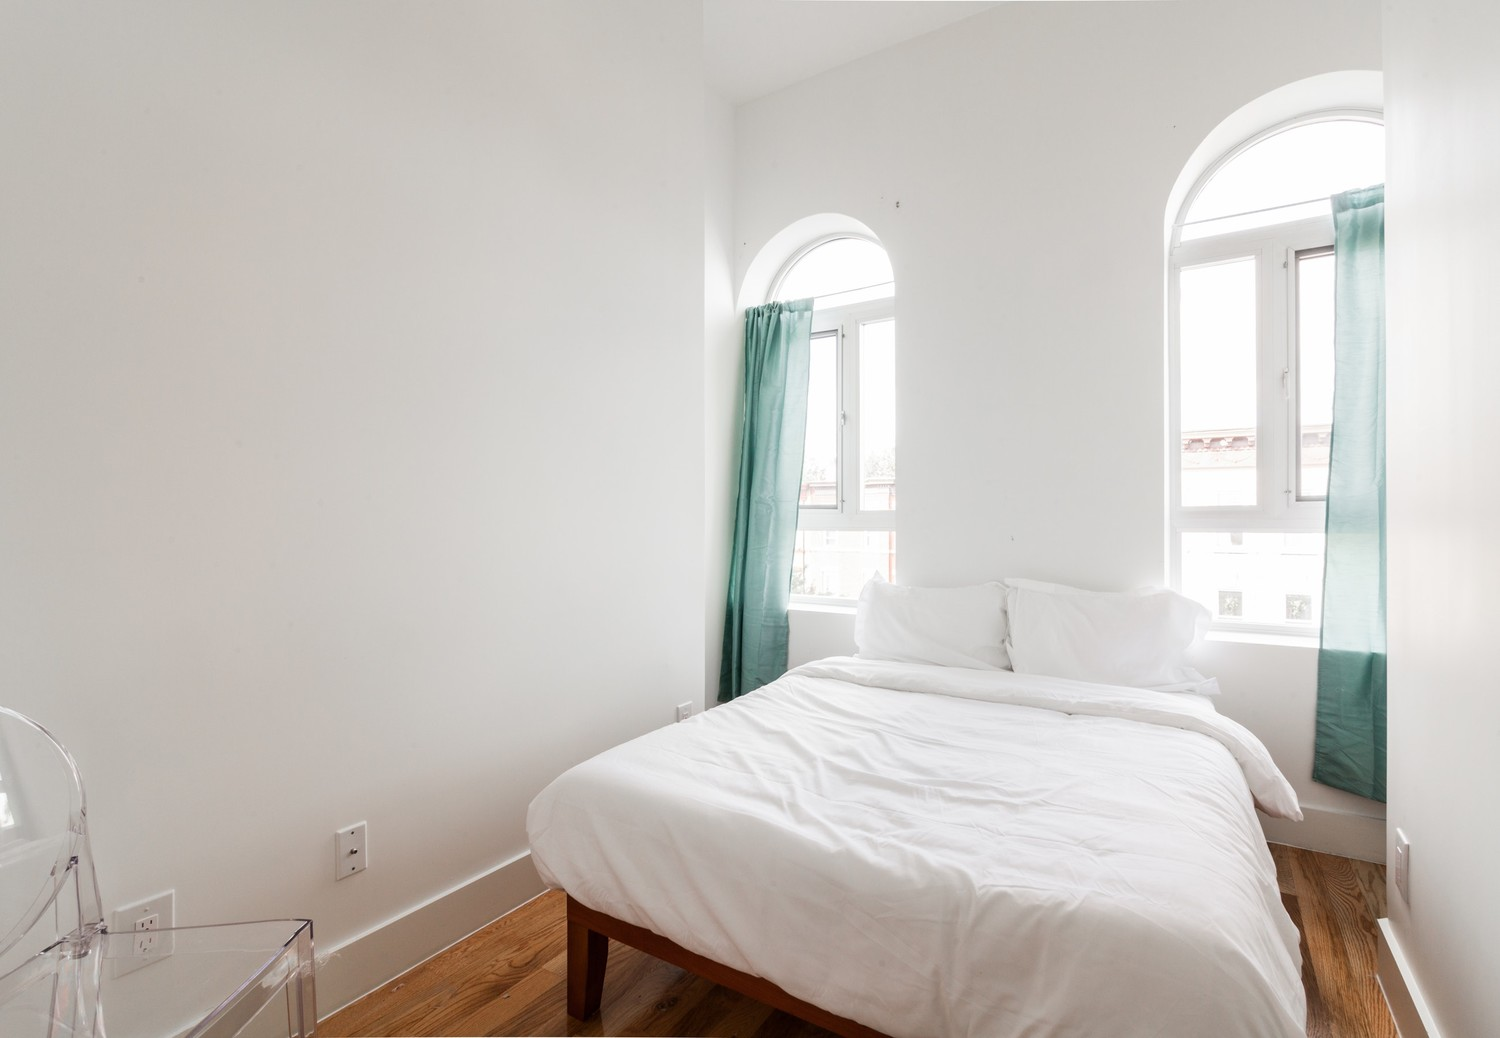 Private Room in 4 Bed Furnished Apt. + Fully Equipped Kitchen, Utilities, & WiFi!